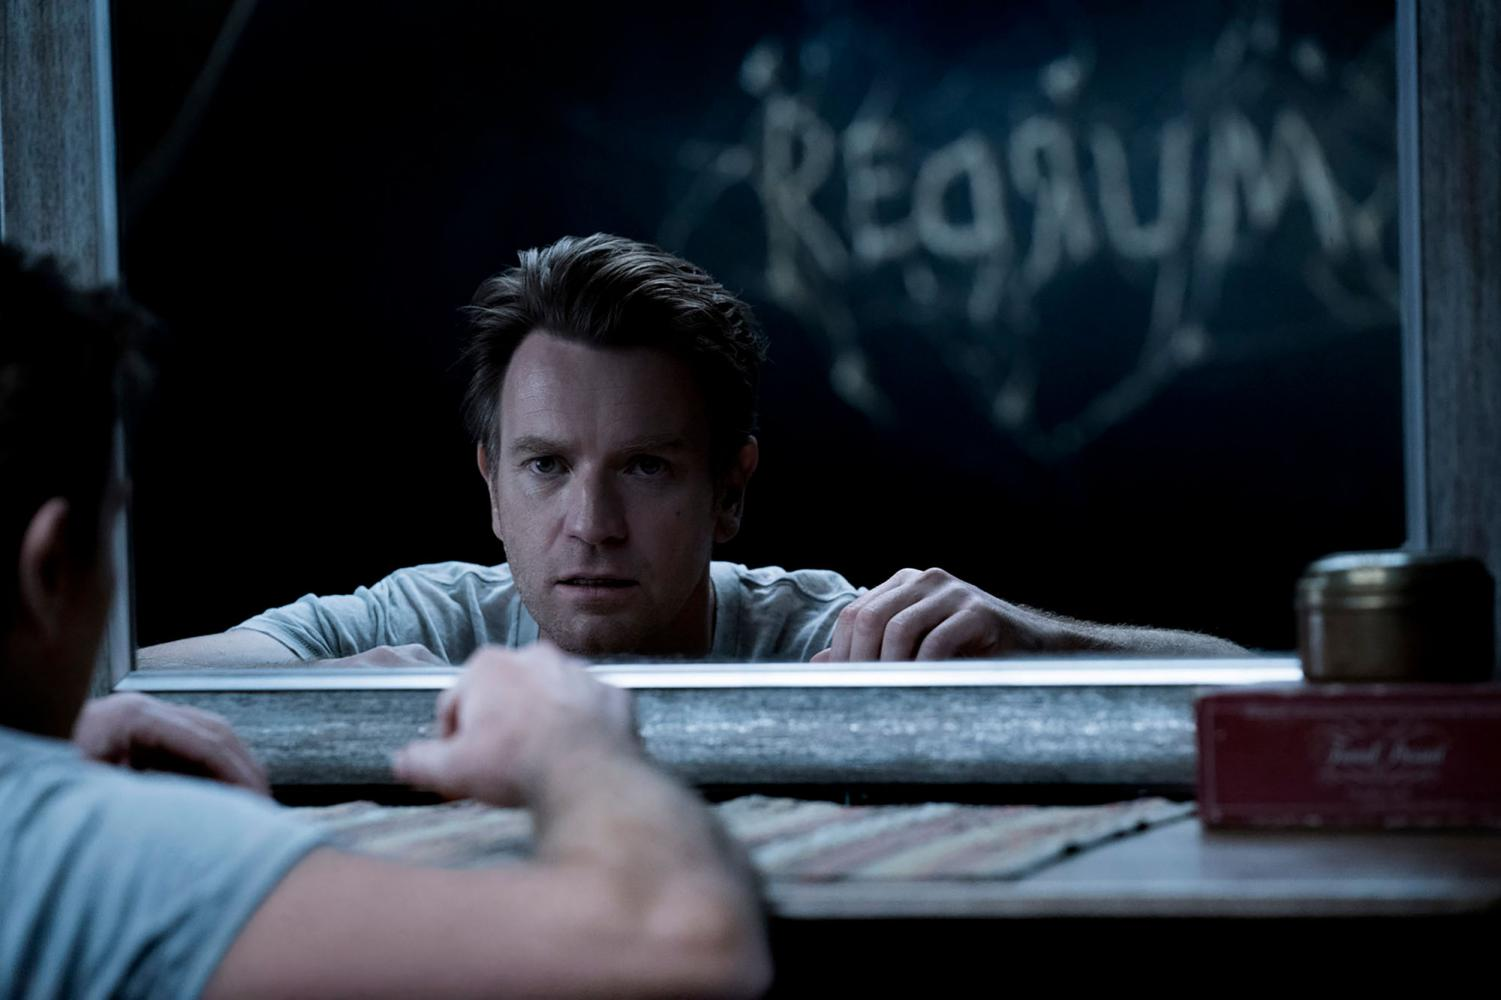 Ewan McGregor unlocks demons of the past in